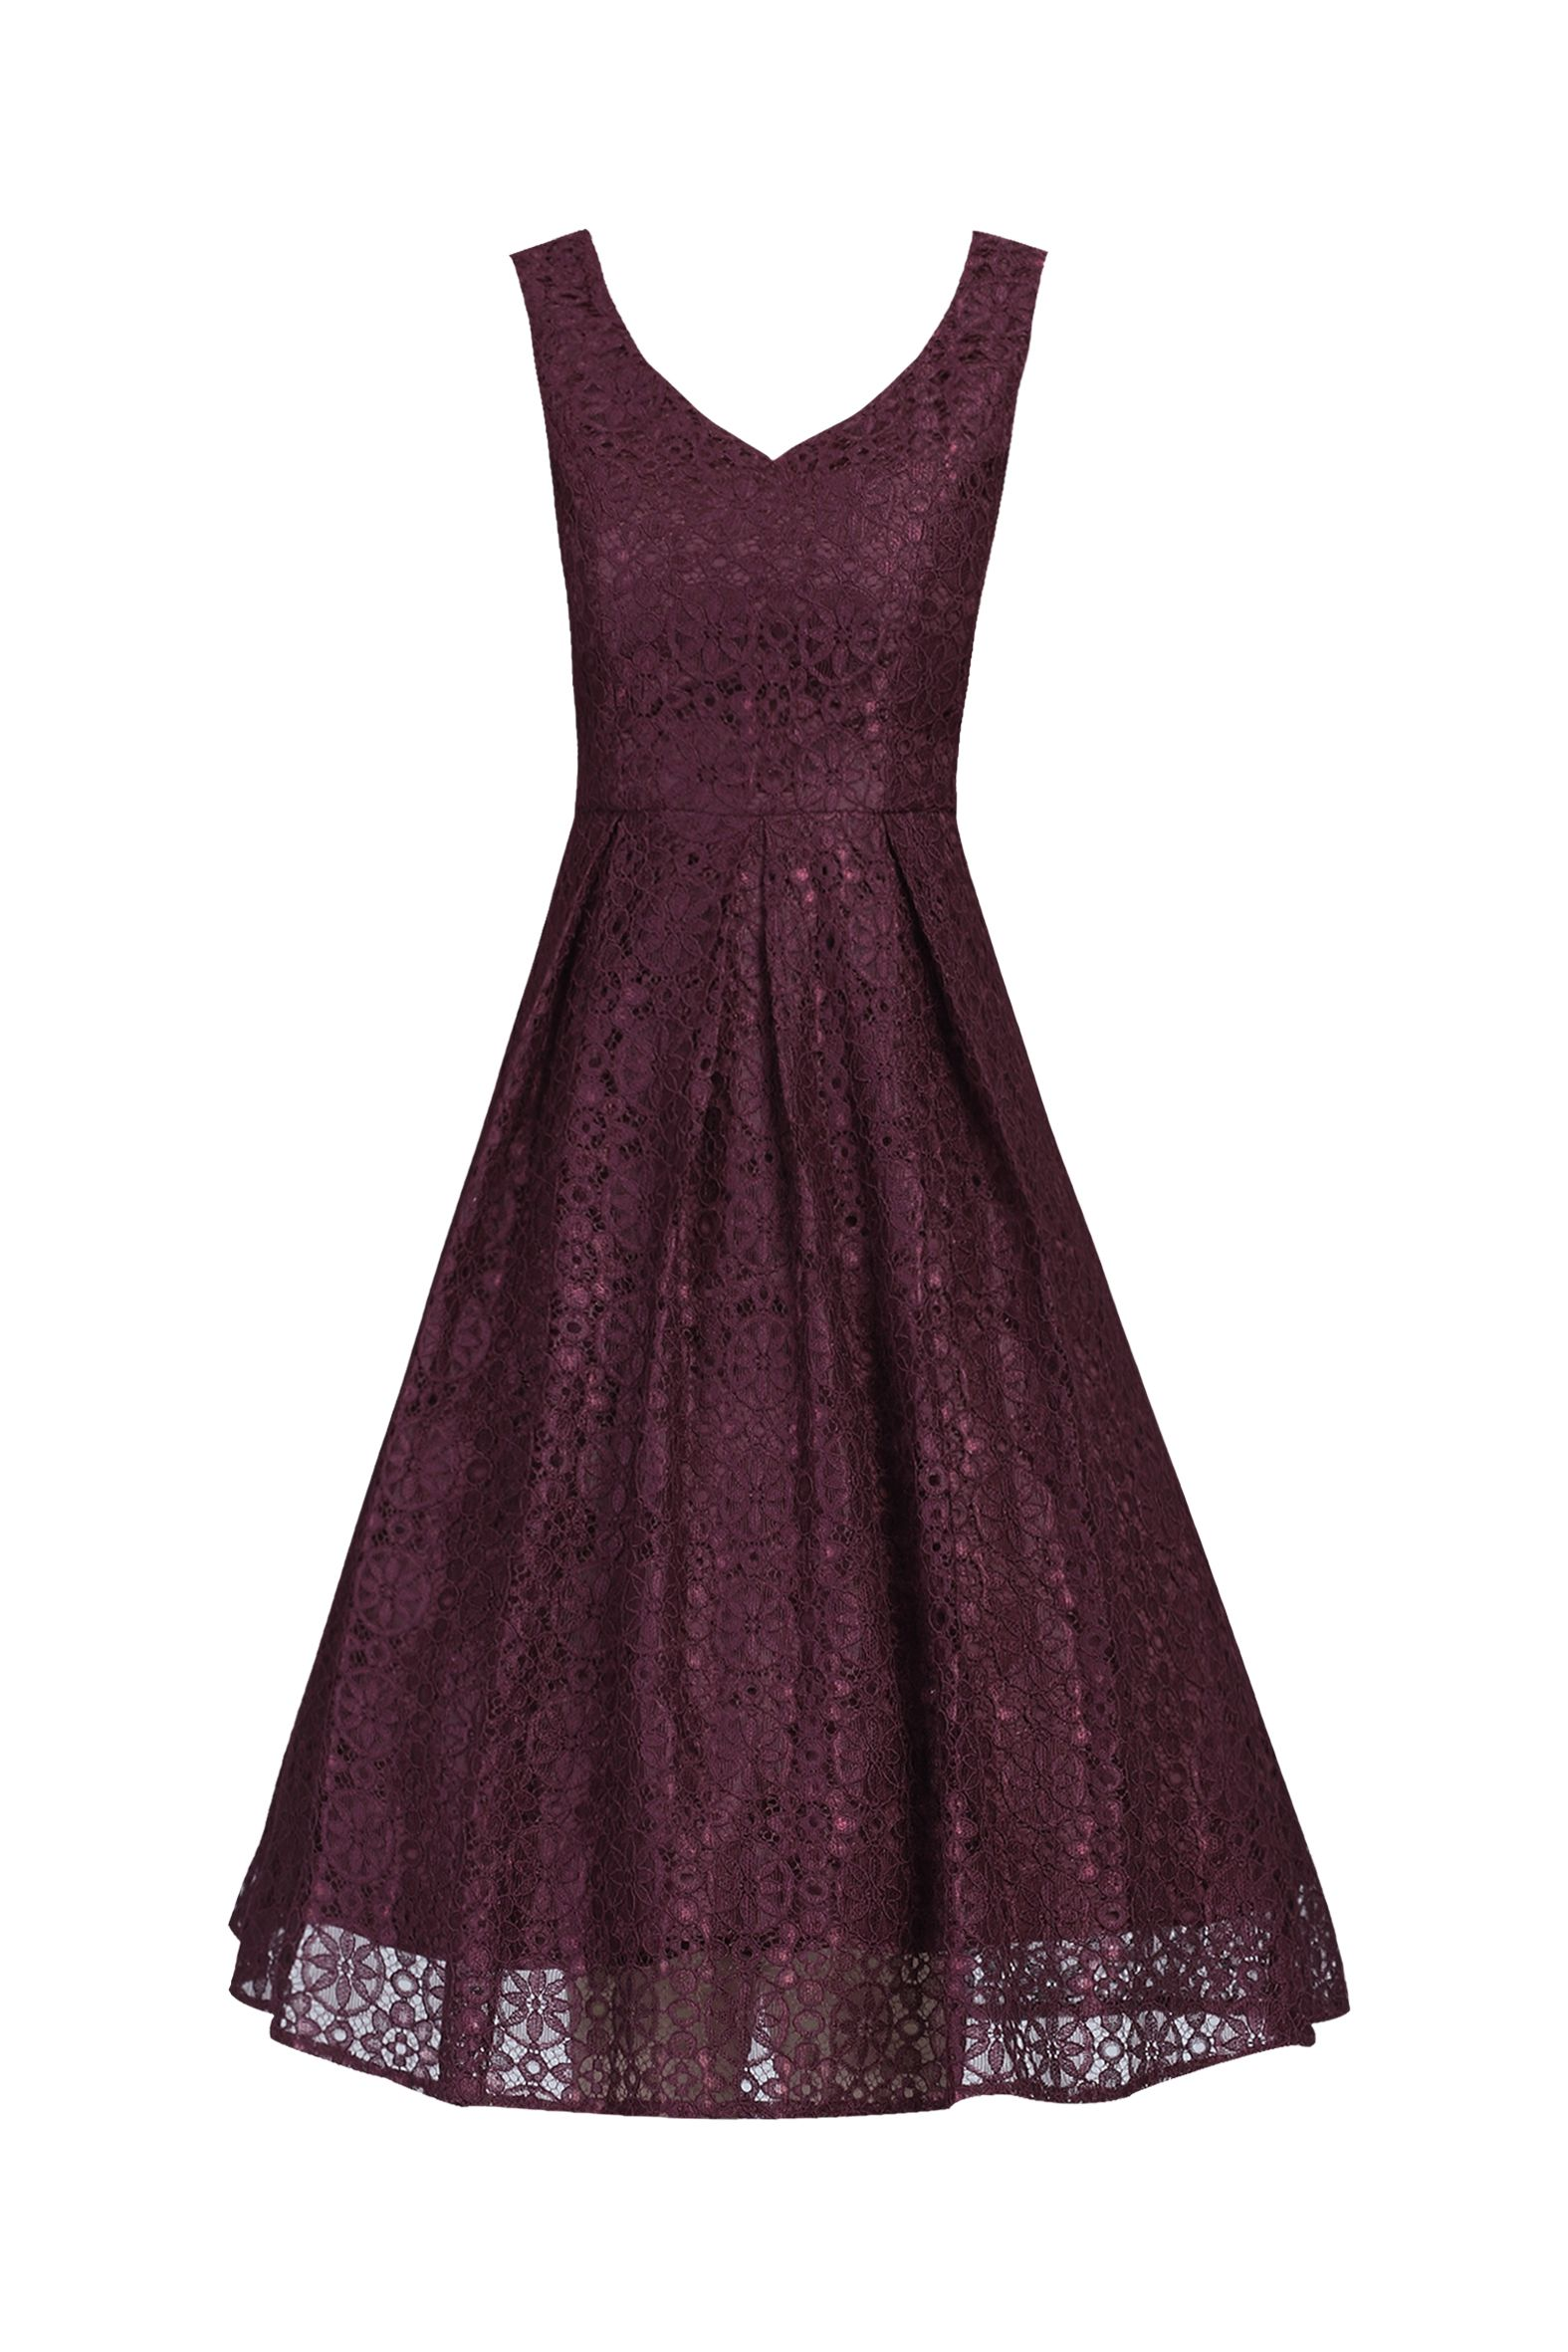 Jolie Moi Sweetheart Pleated Lace Dress, Red